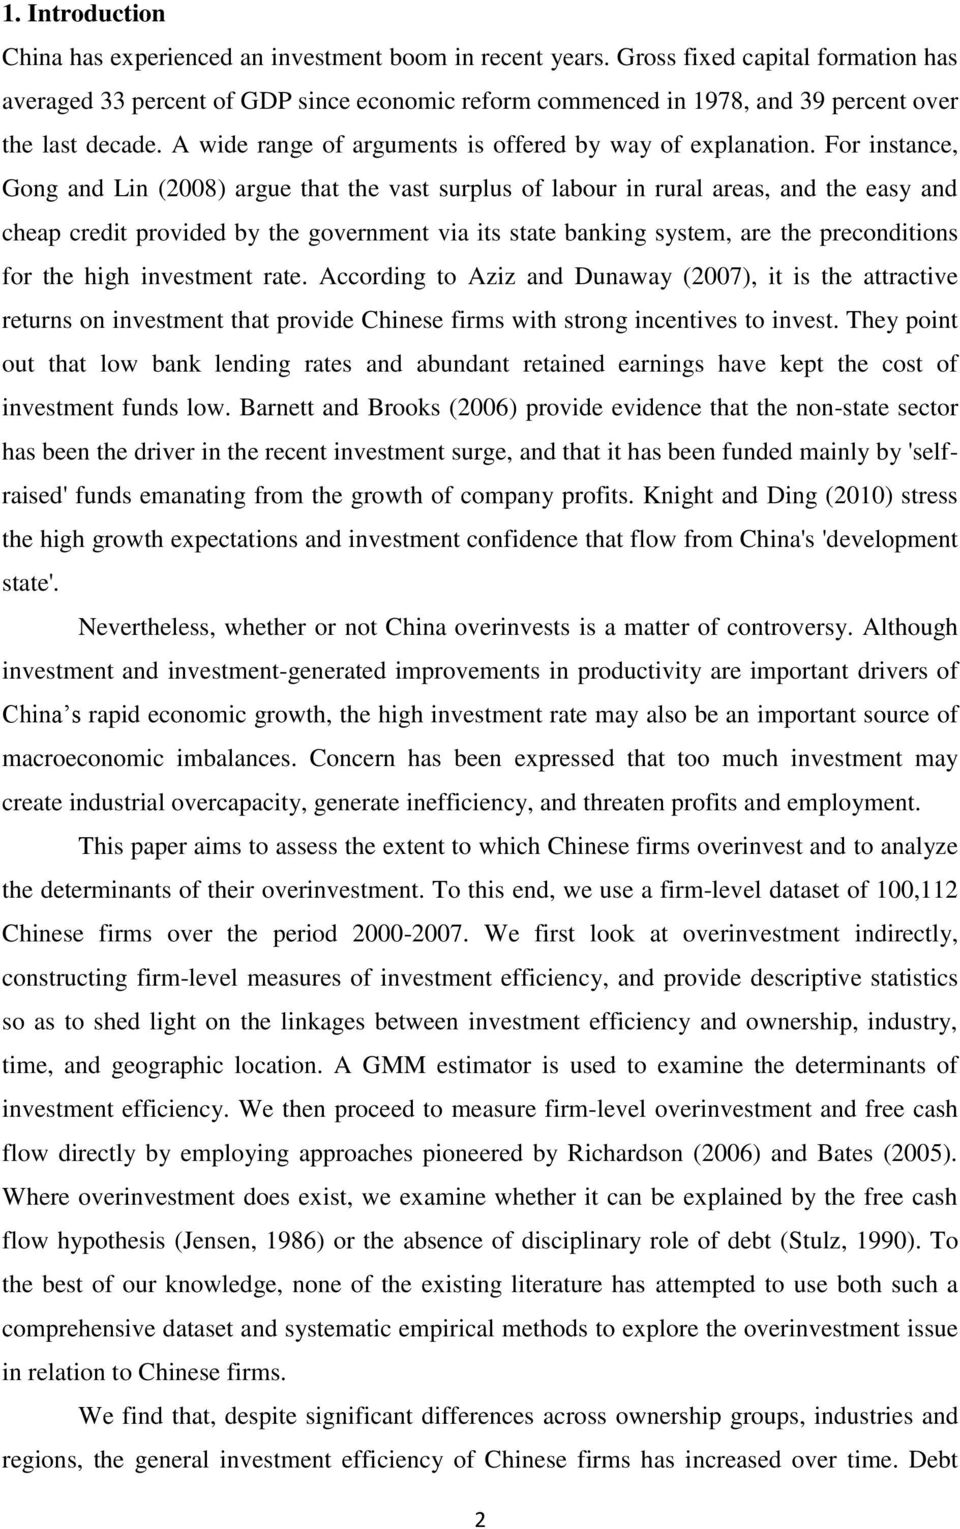 For instance, Gong and Lin (2008) argue that the vast surplus of labour in rural areas, and the easy and cheap credit provided by the government via its state banking system, are the preconditions